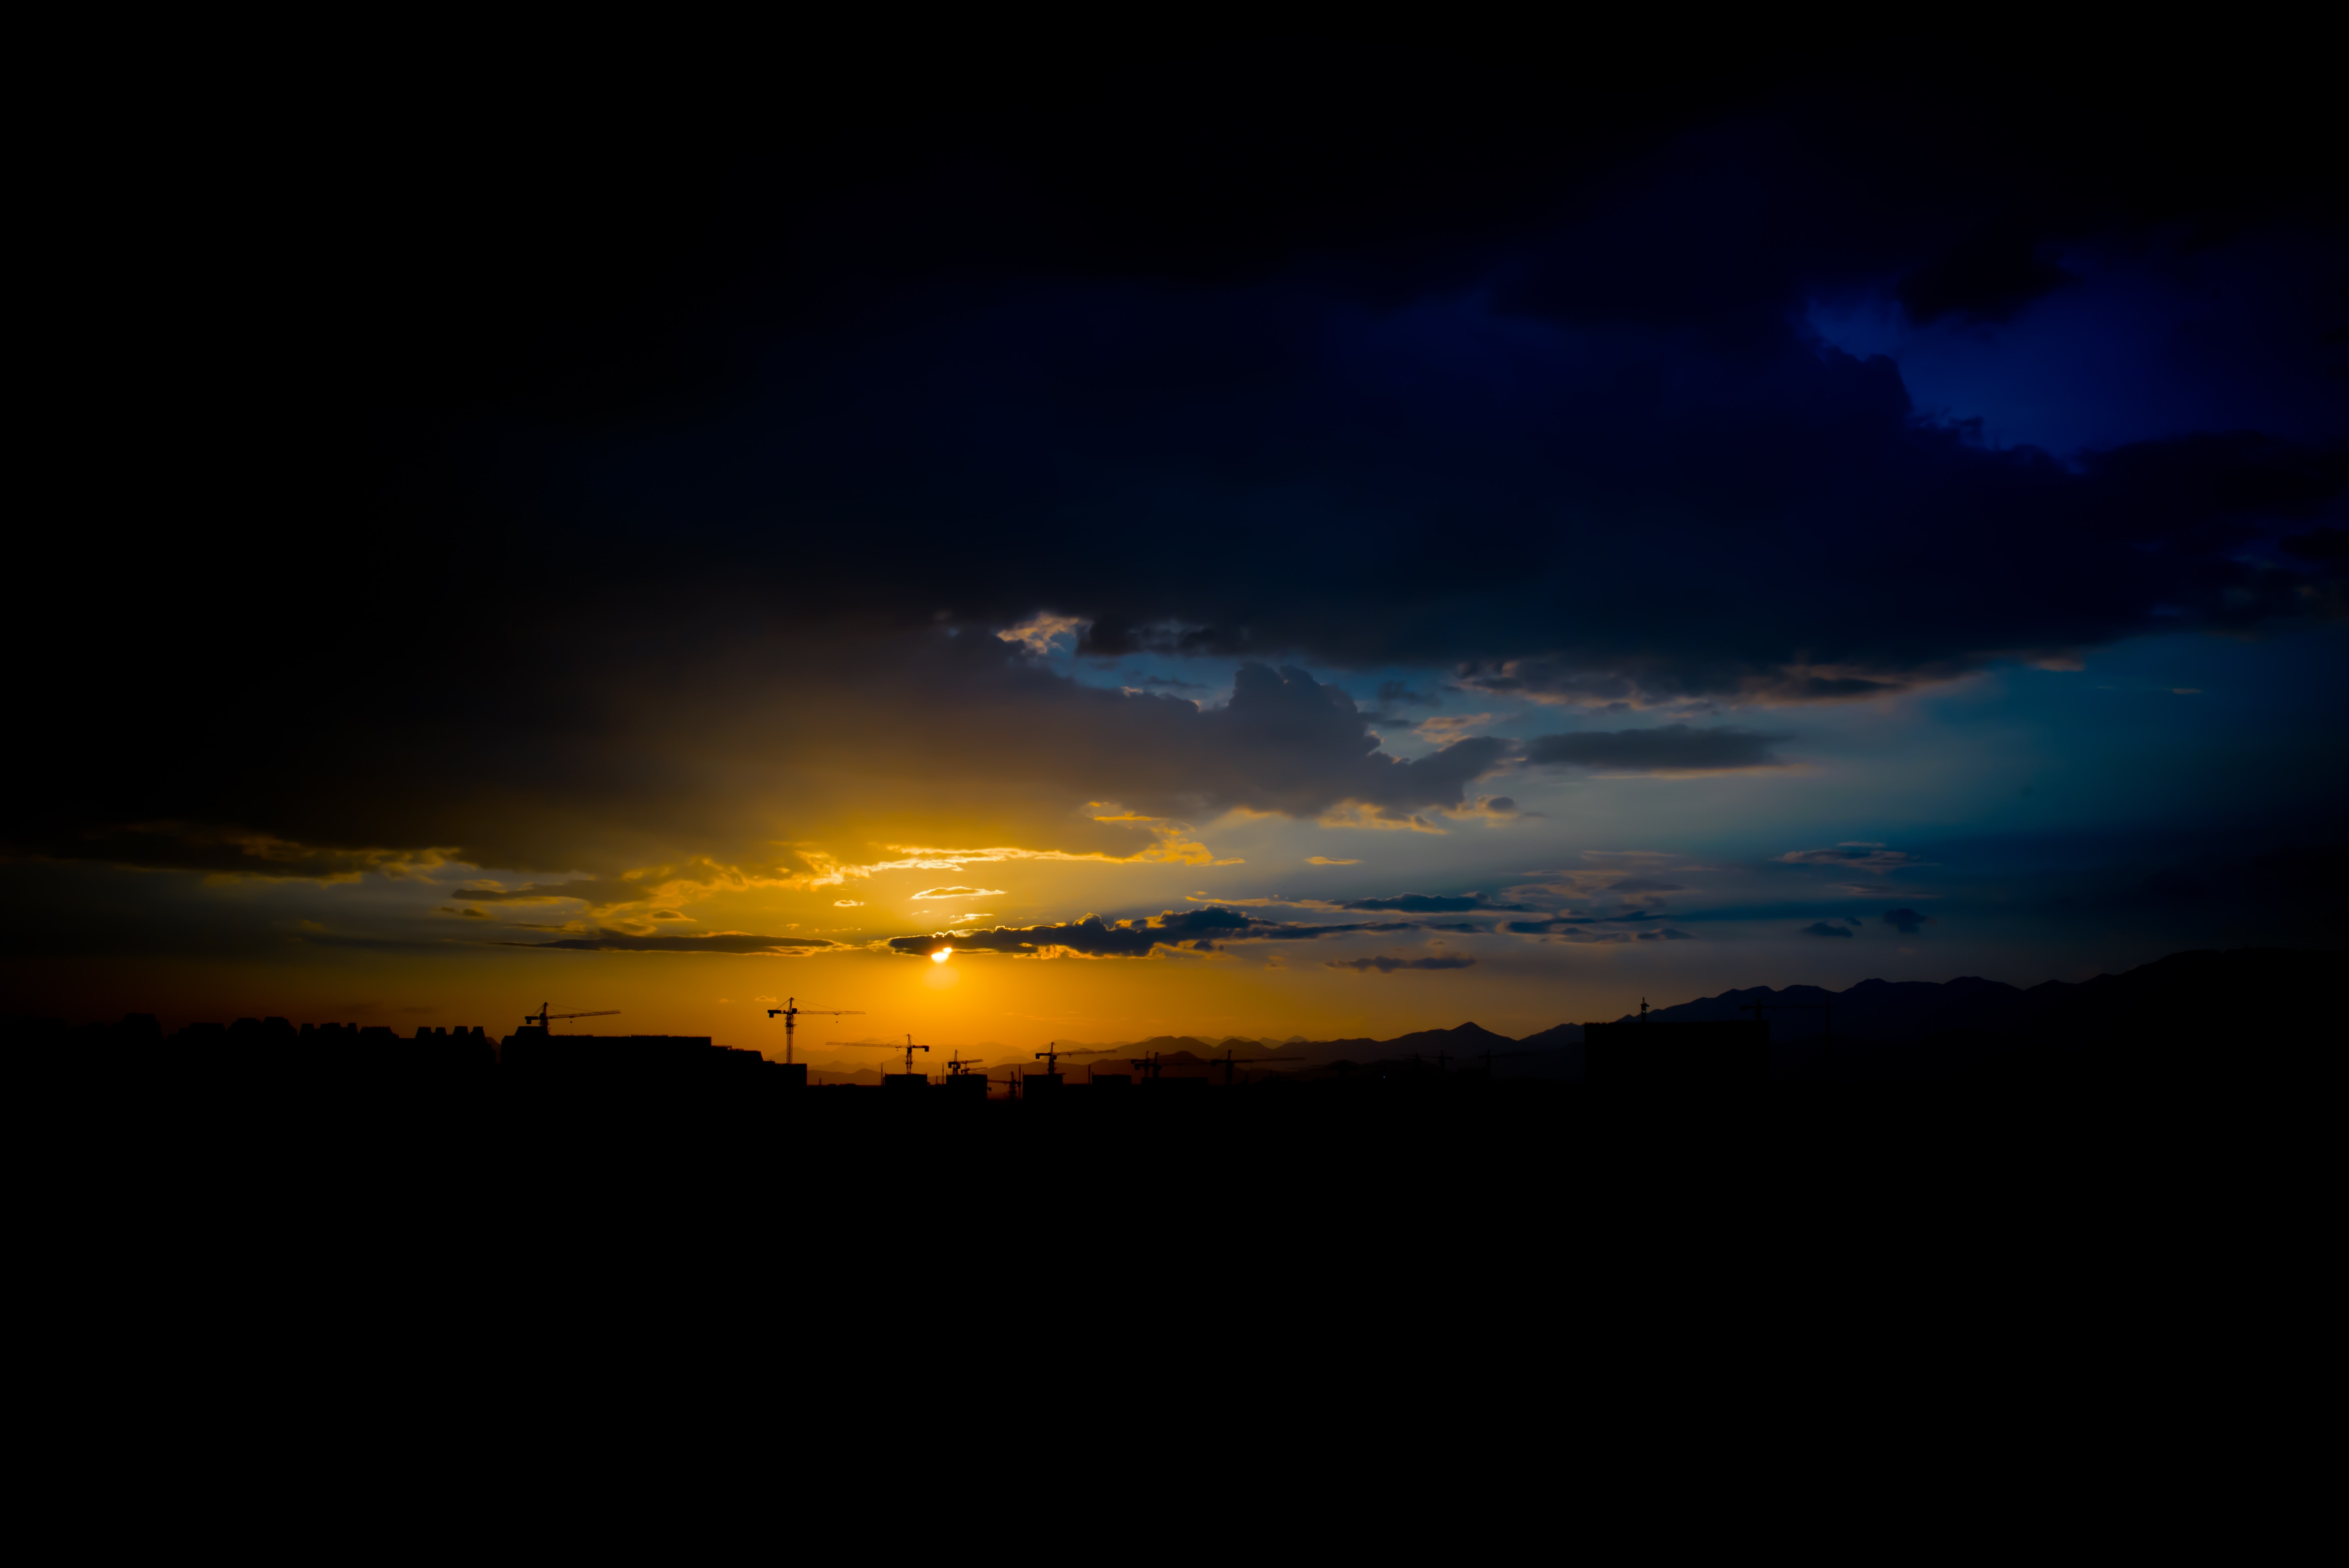 landscape photography of sunset